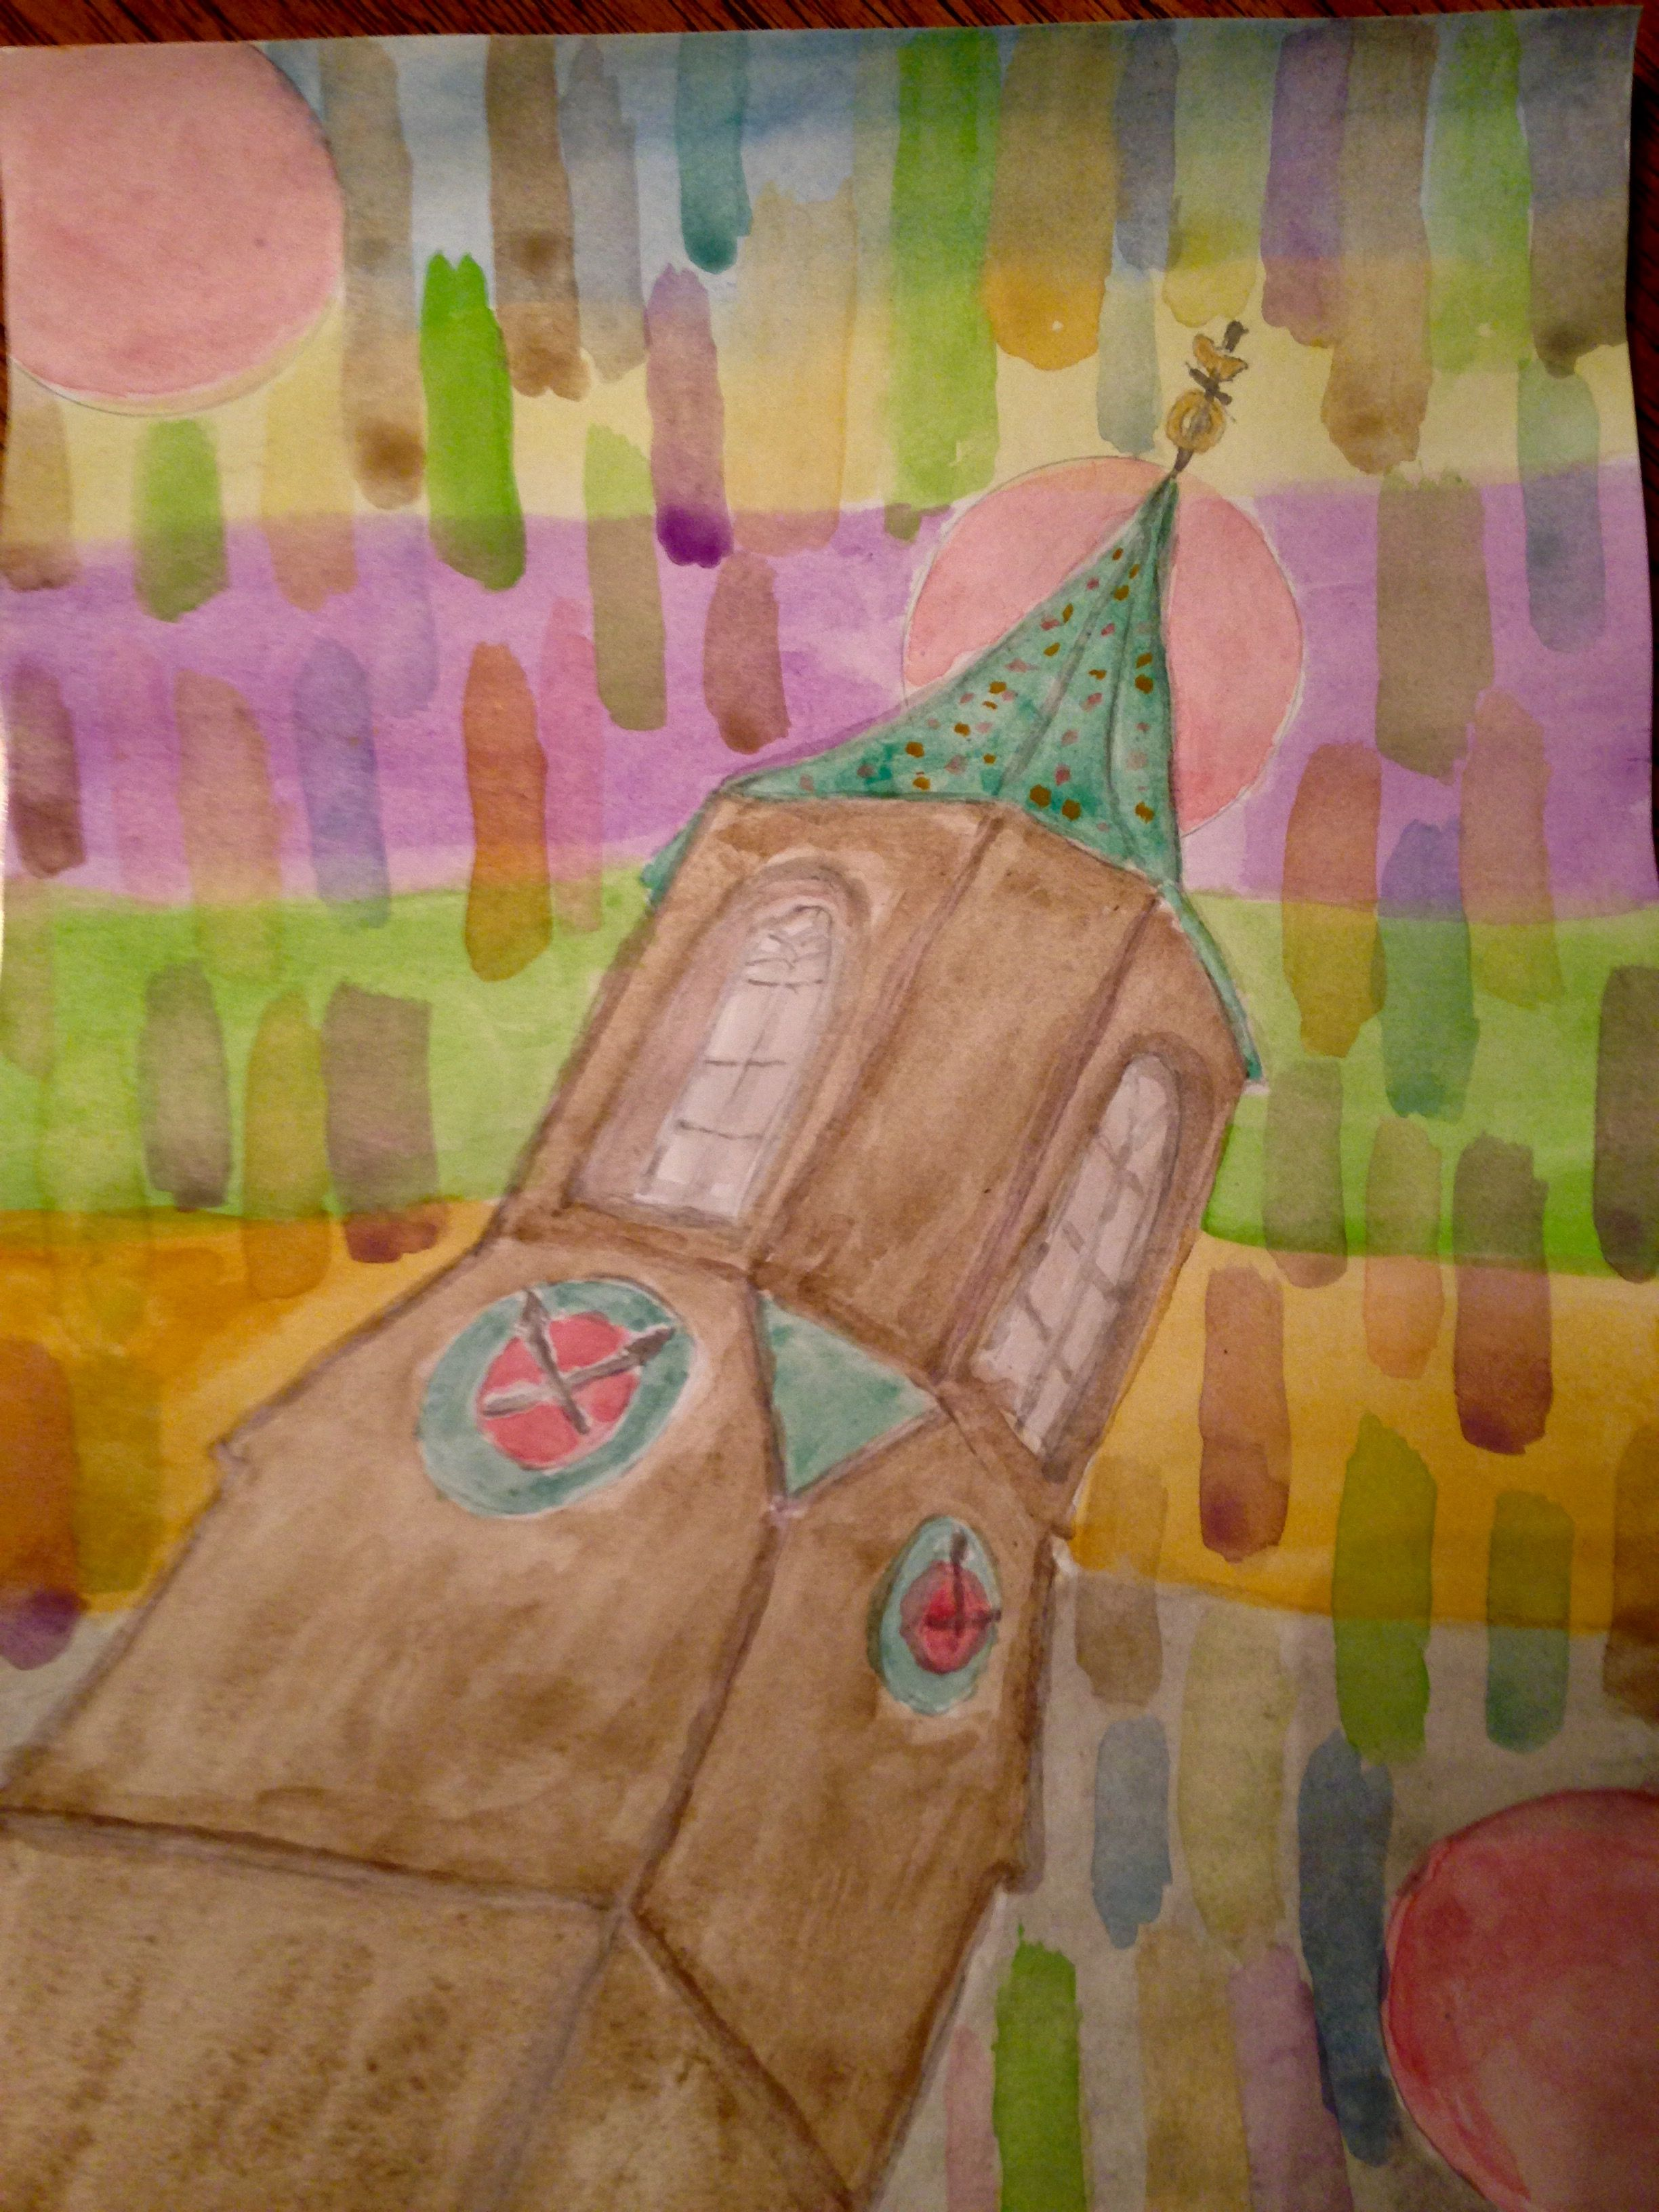 Watercoloring family history for my kids and grandkids. Church steeple of my childhood home town surrounded by shades of colors of the local crops